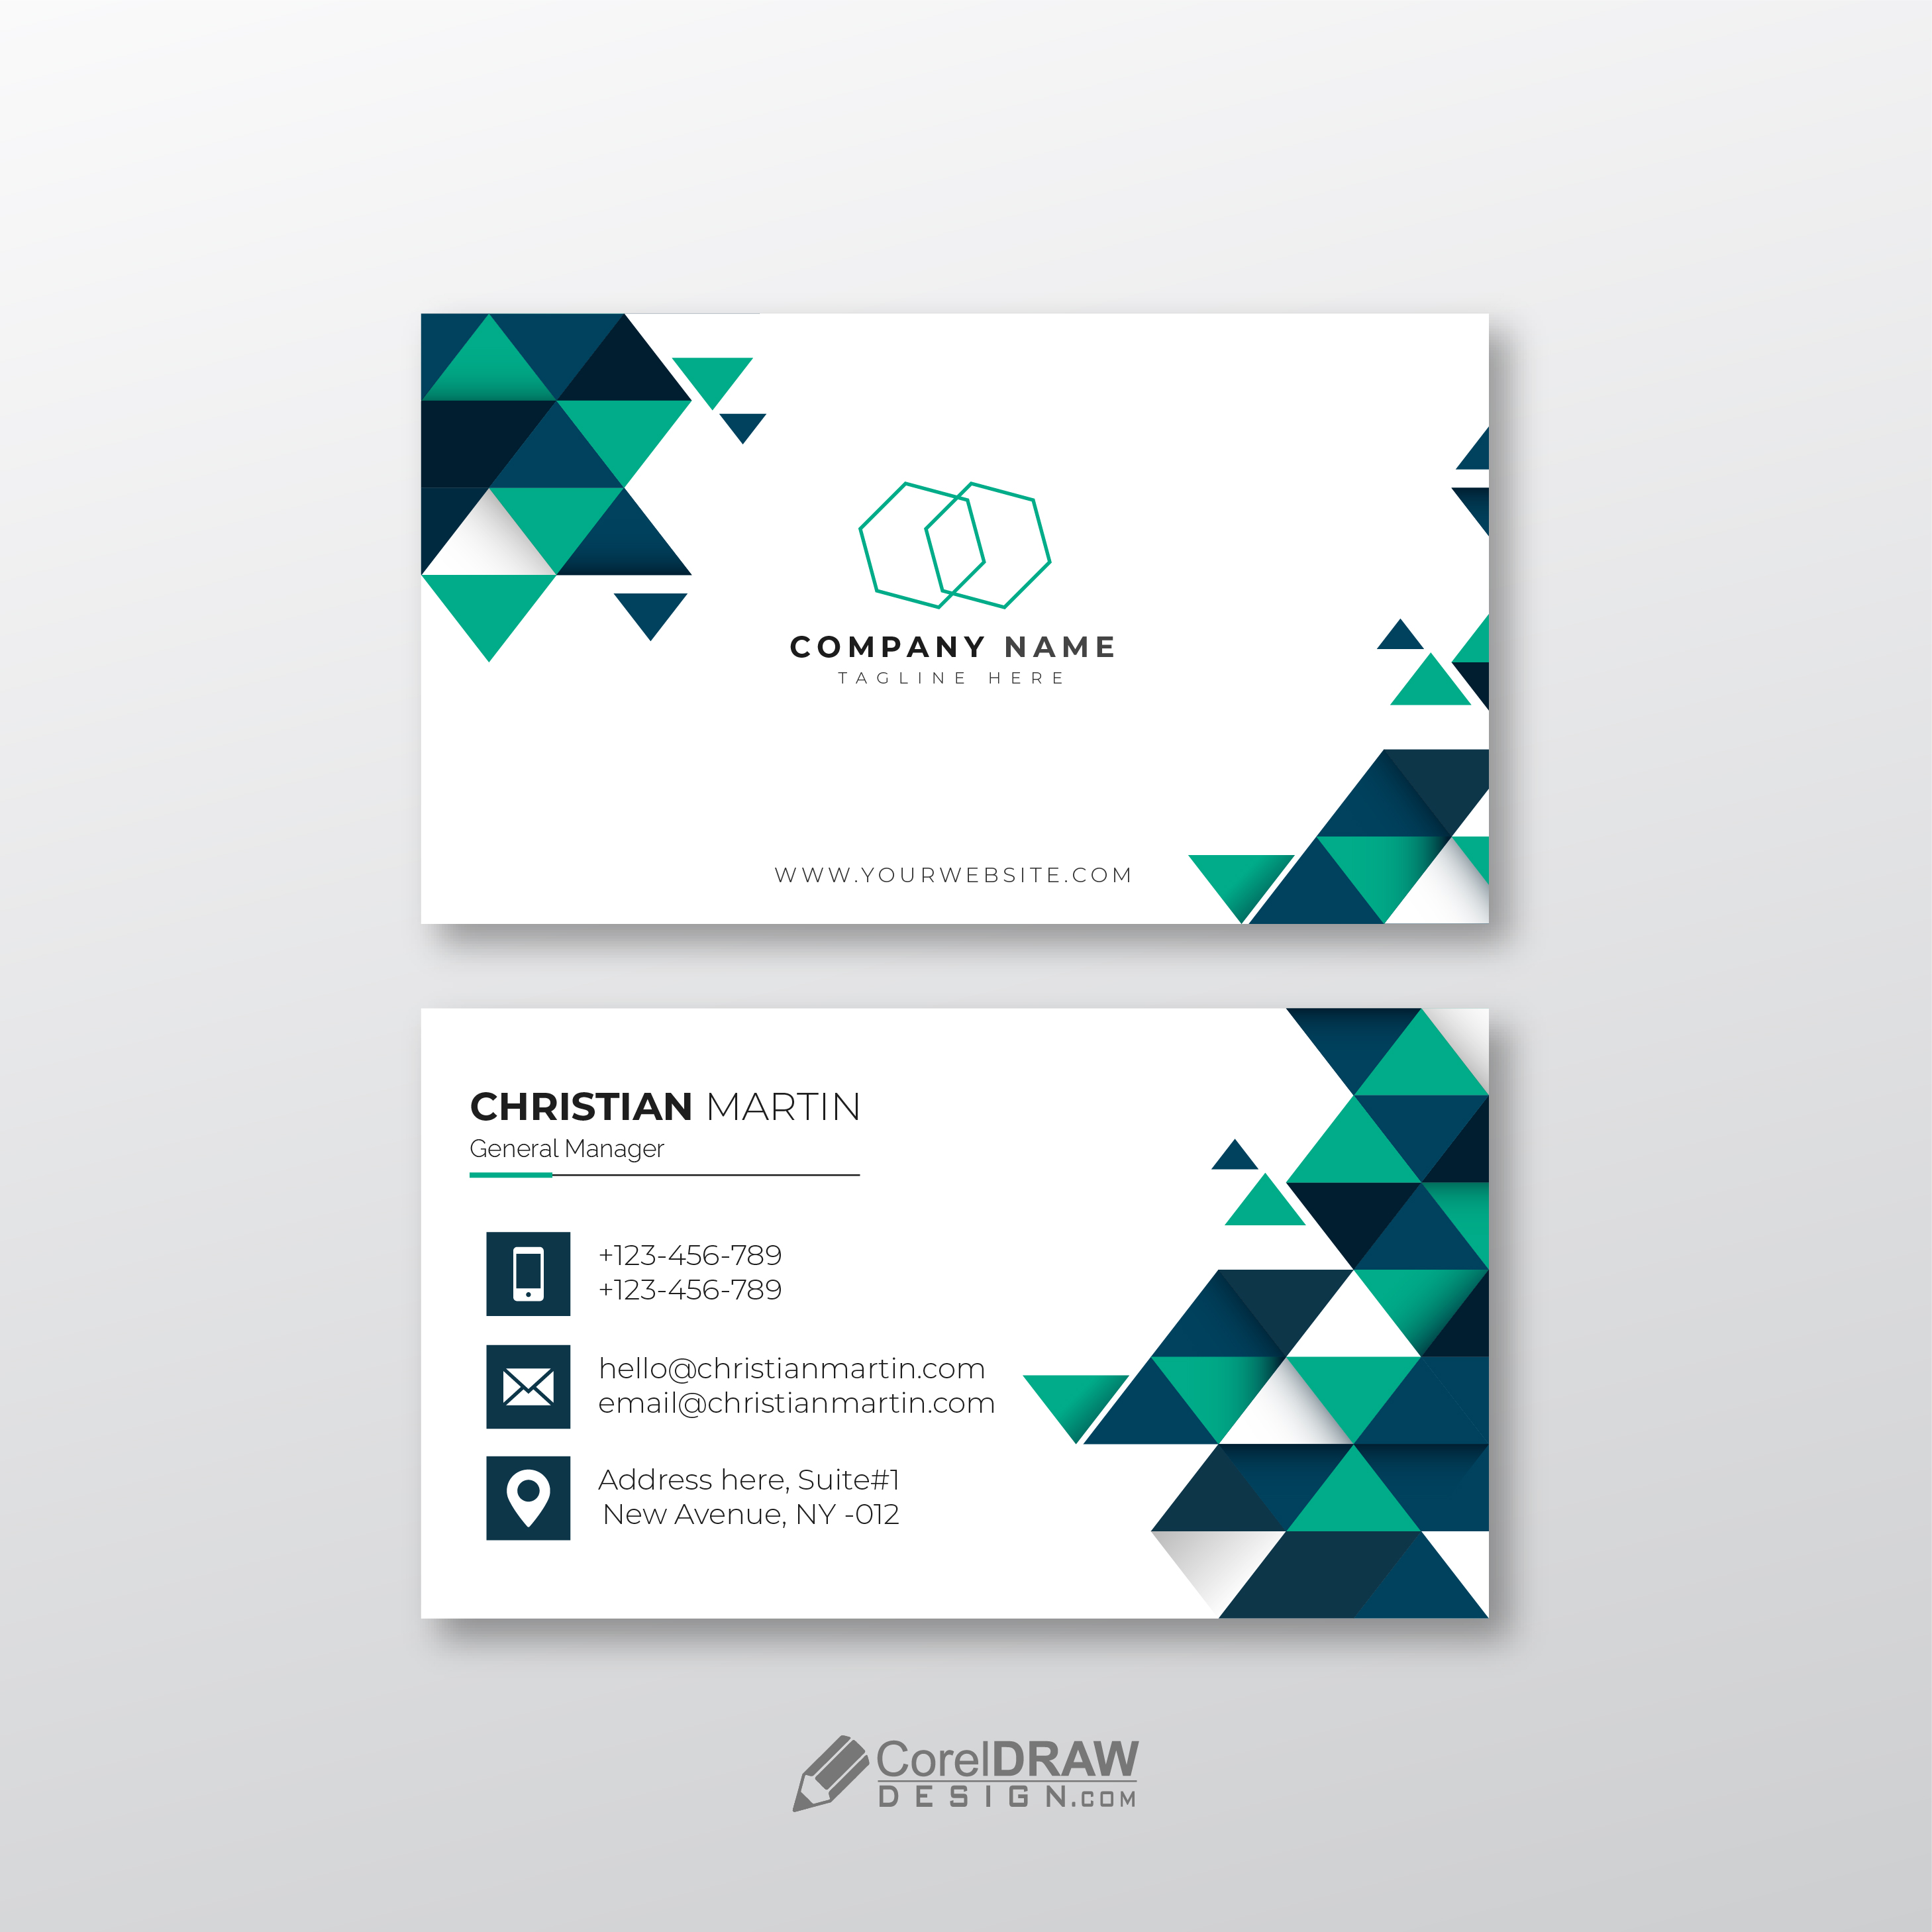 Clean Elegant Corporate Abstract Geometric Business Card